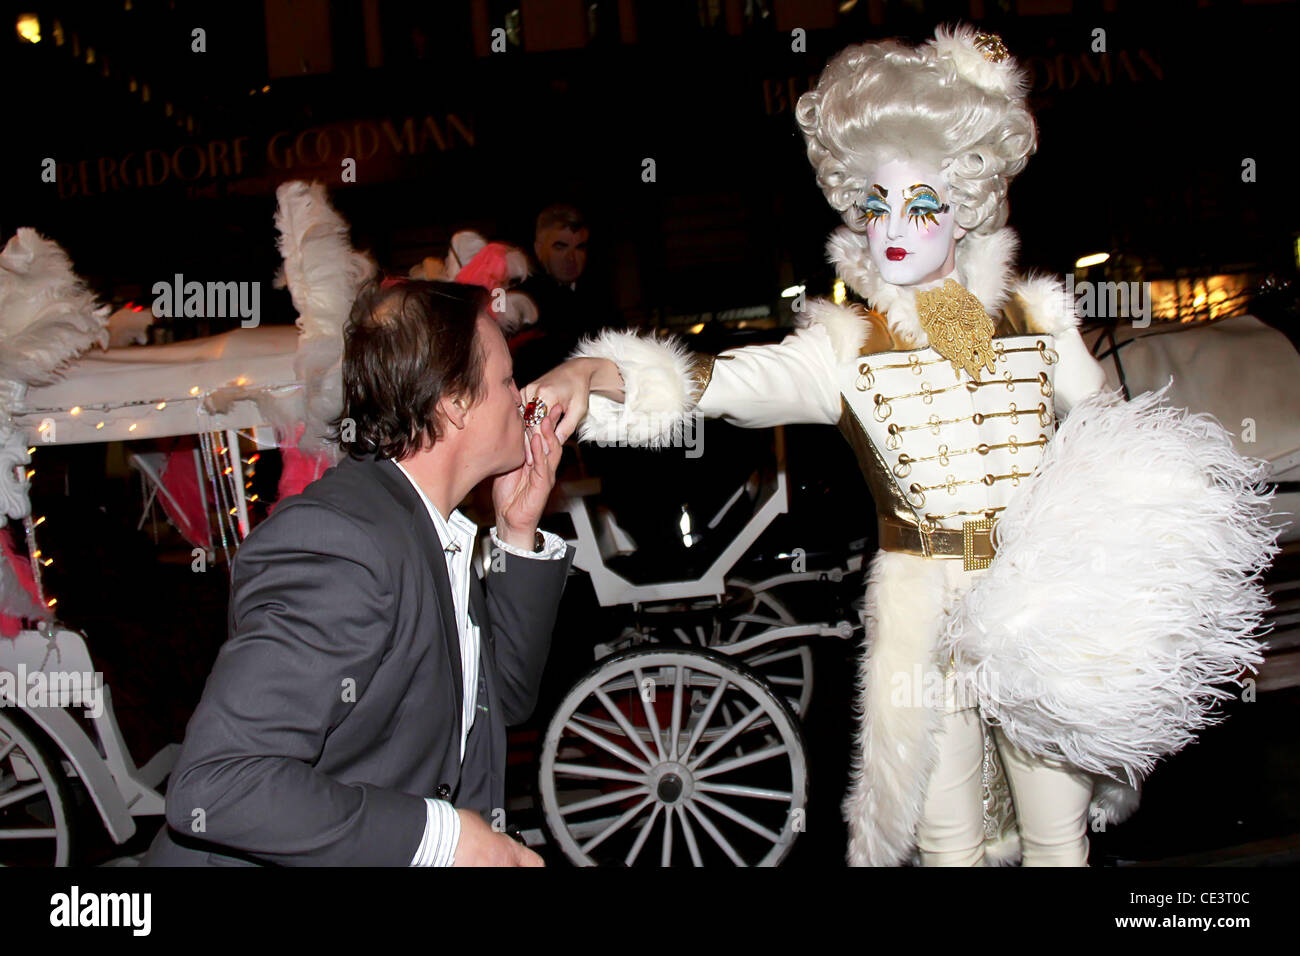 Patrick McMullan and Prince Poppycock Assouline's 'Windows at Bergdorf Goodman' book party celebration - Inside Stock Photo